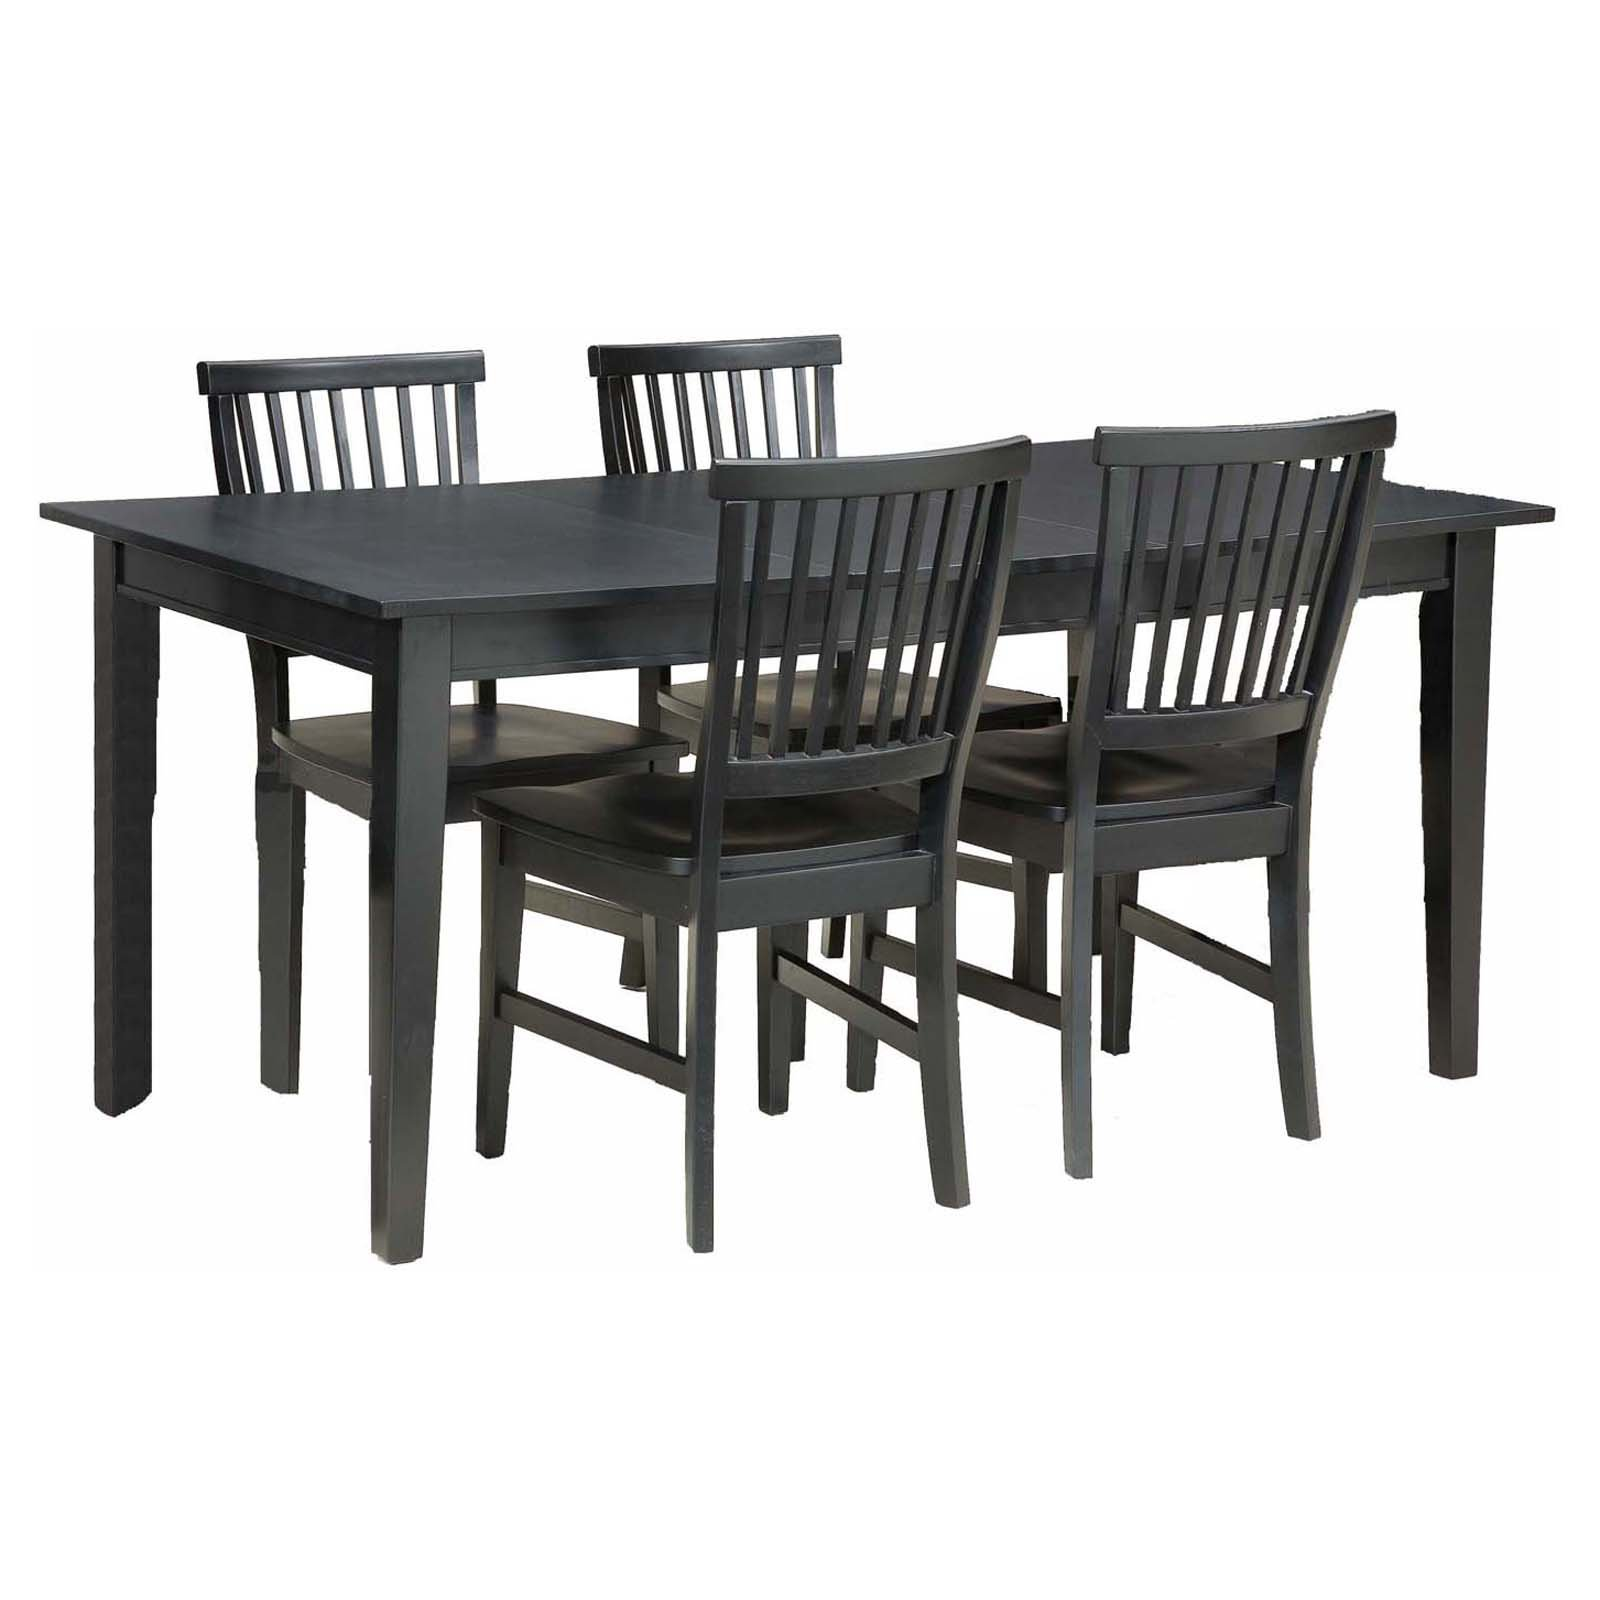 Home Styles Arts & Crafts 5 Piece Dining Set, Ebony